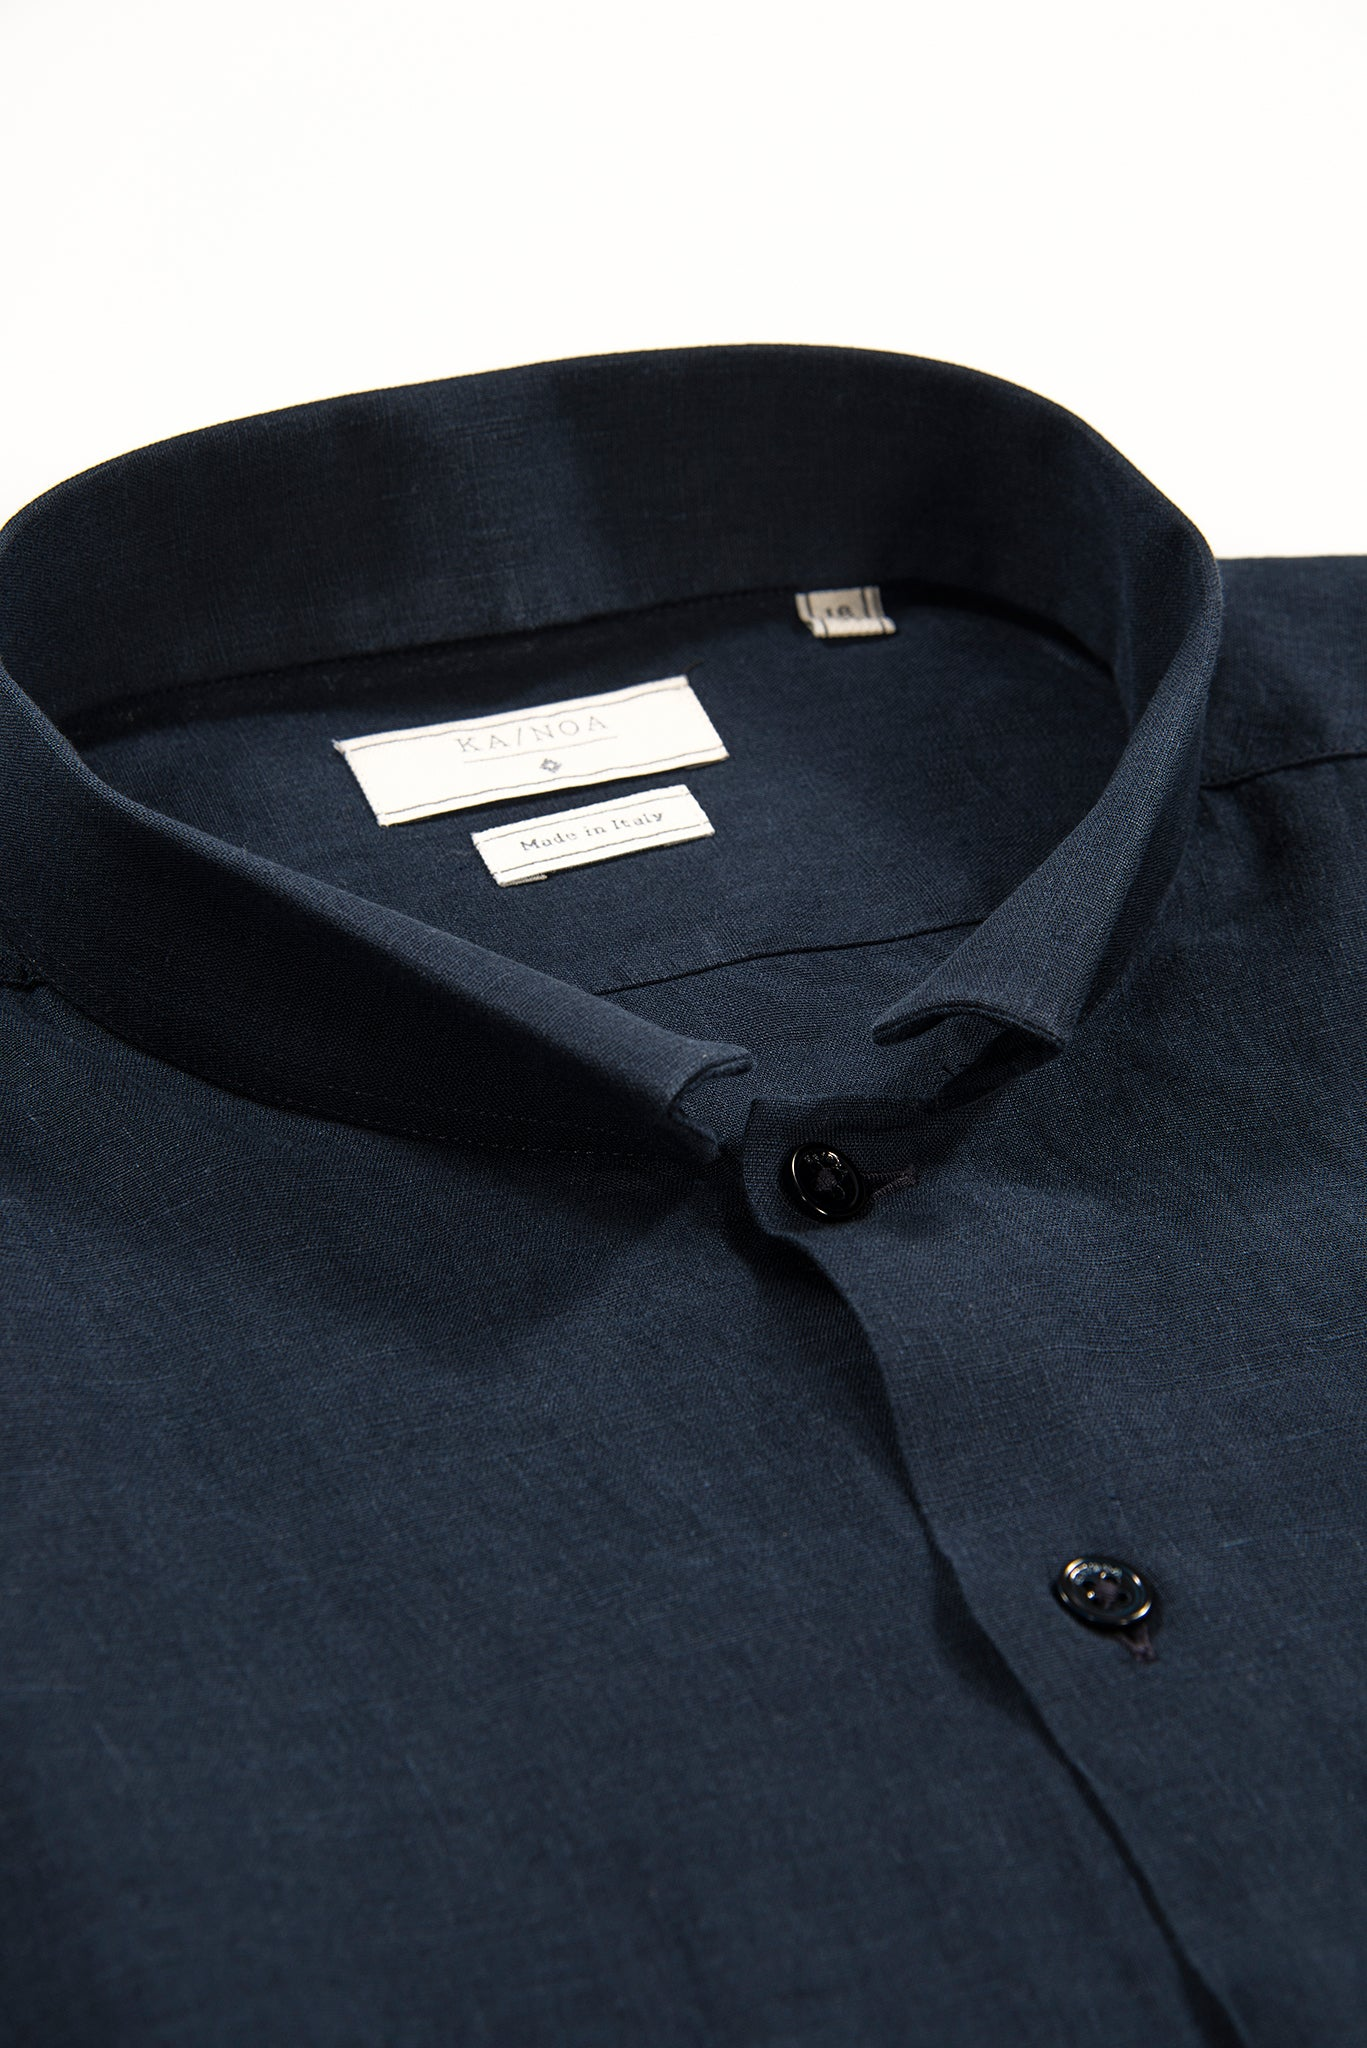 Conrad Golden Linen shirt (Dark Blue)